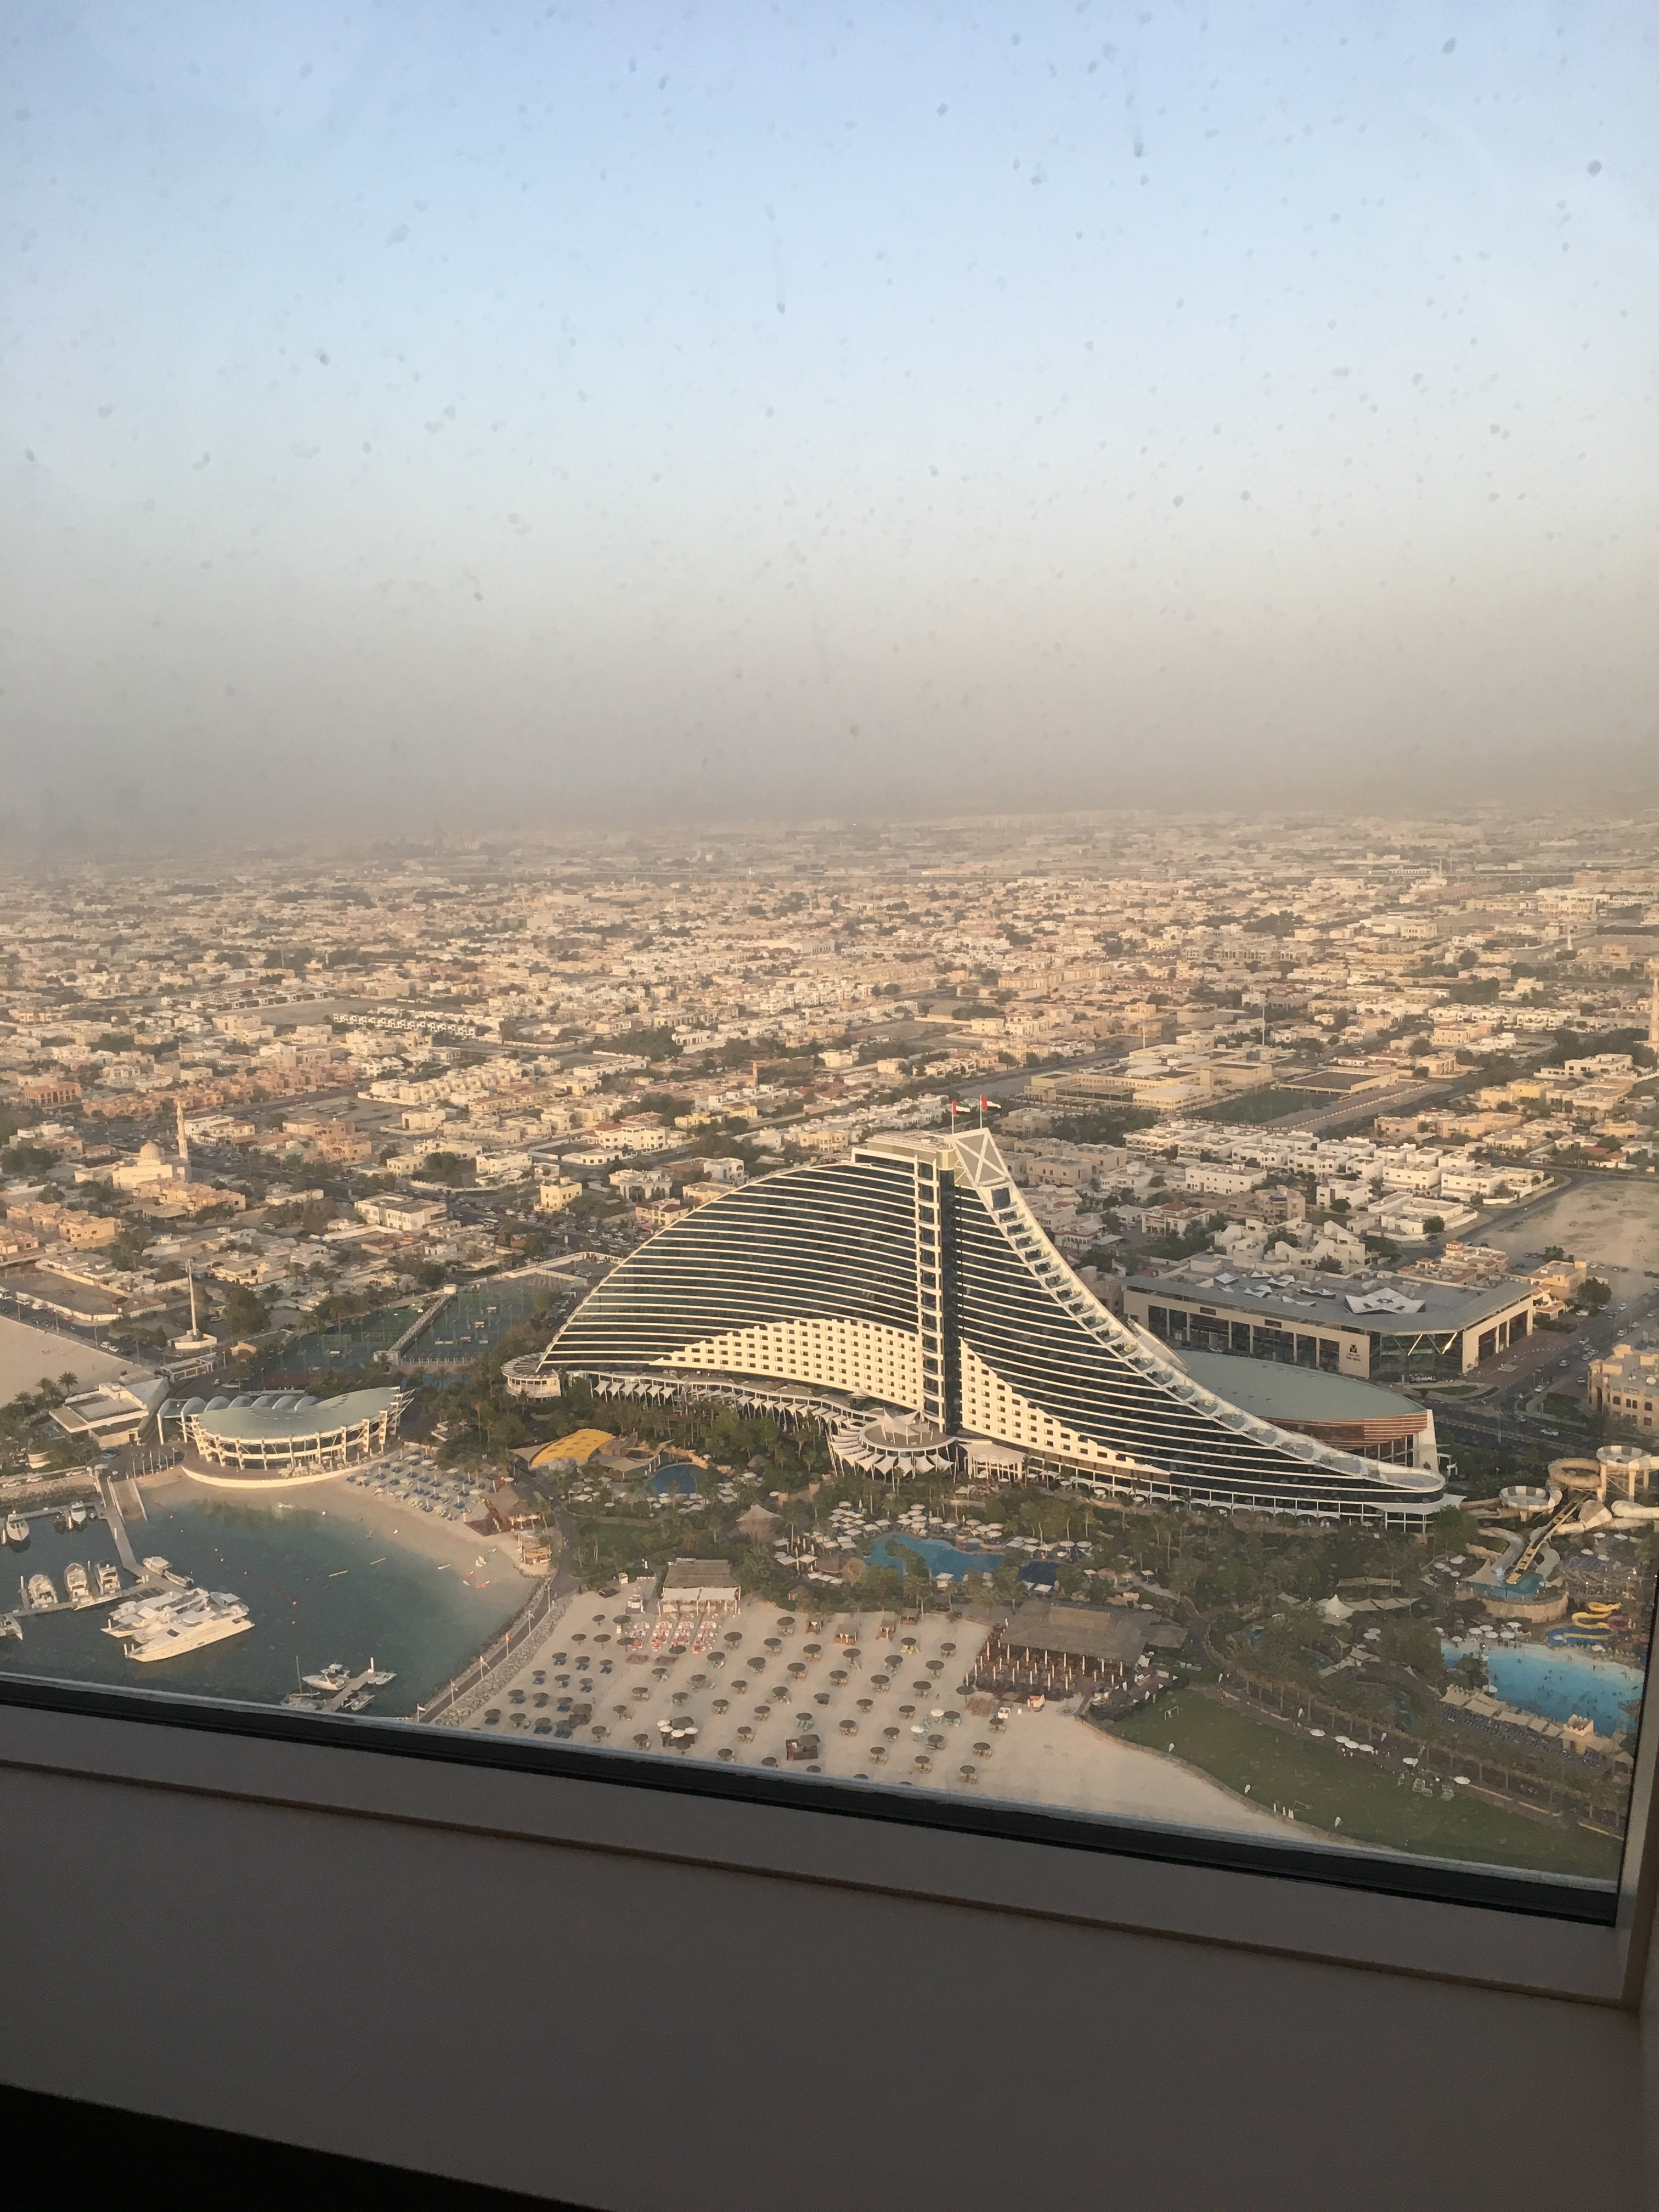 View from Gold on 27 overlooking the Jumeirah Beach Hotel